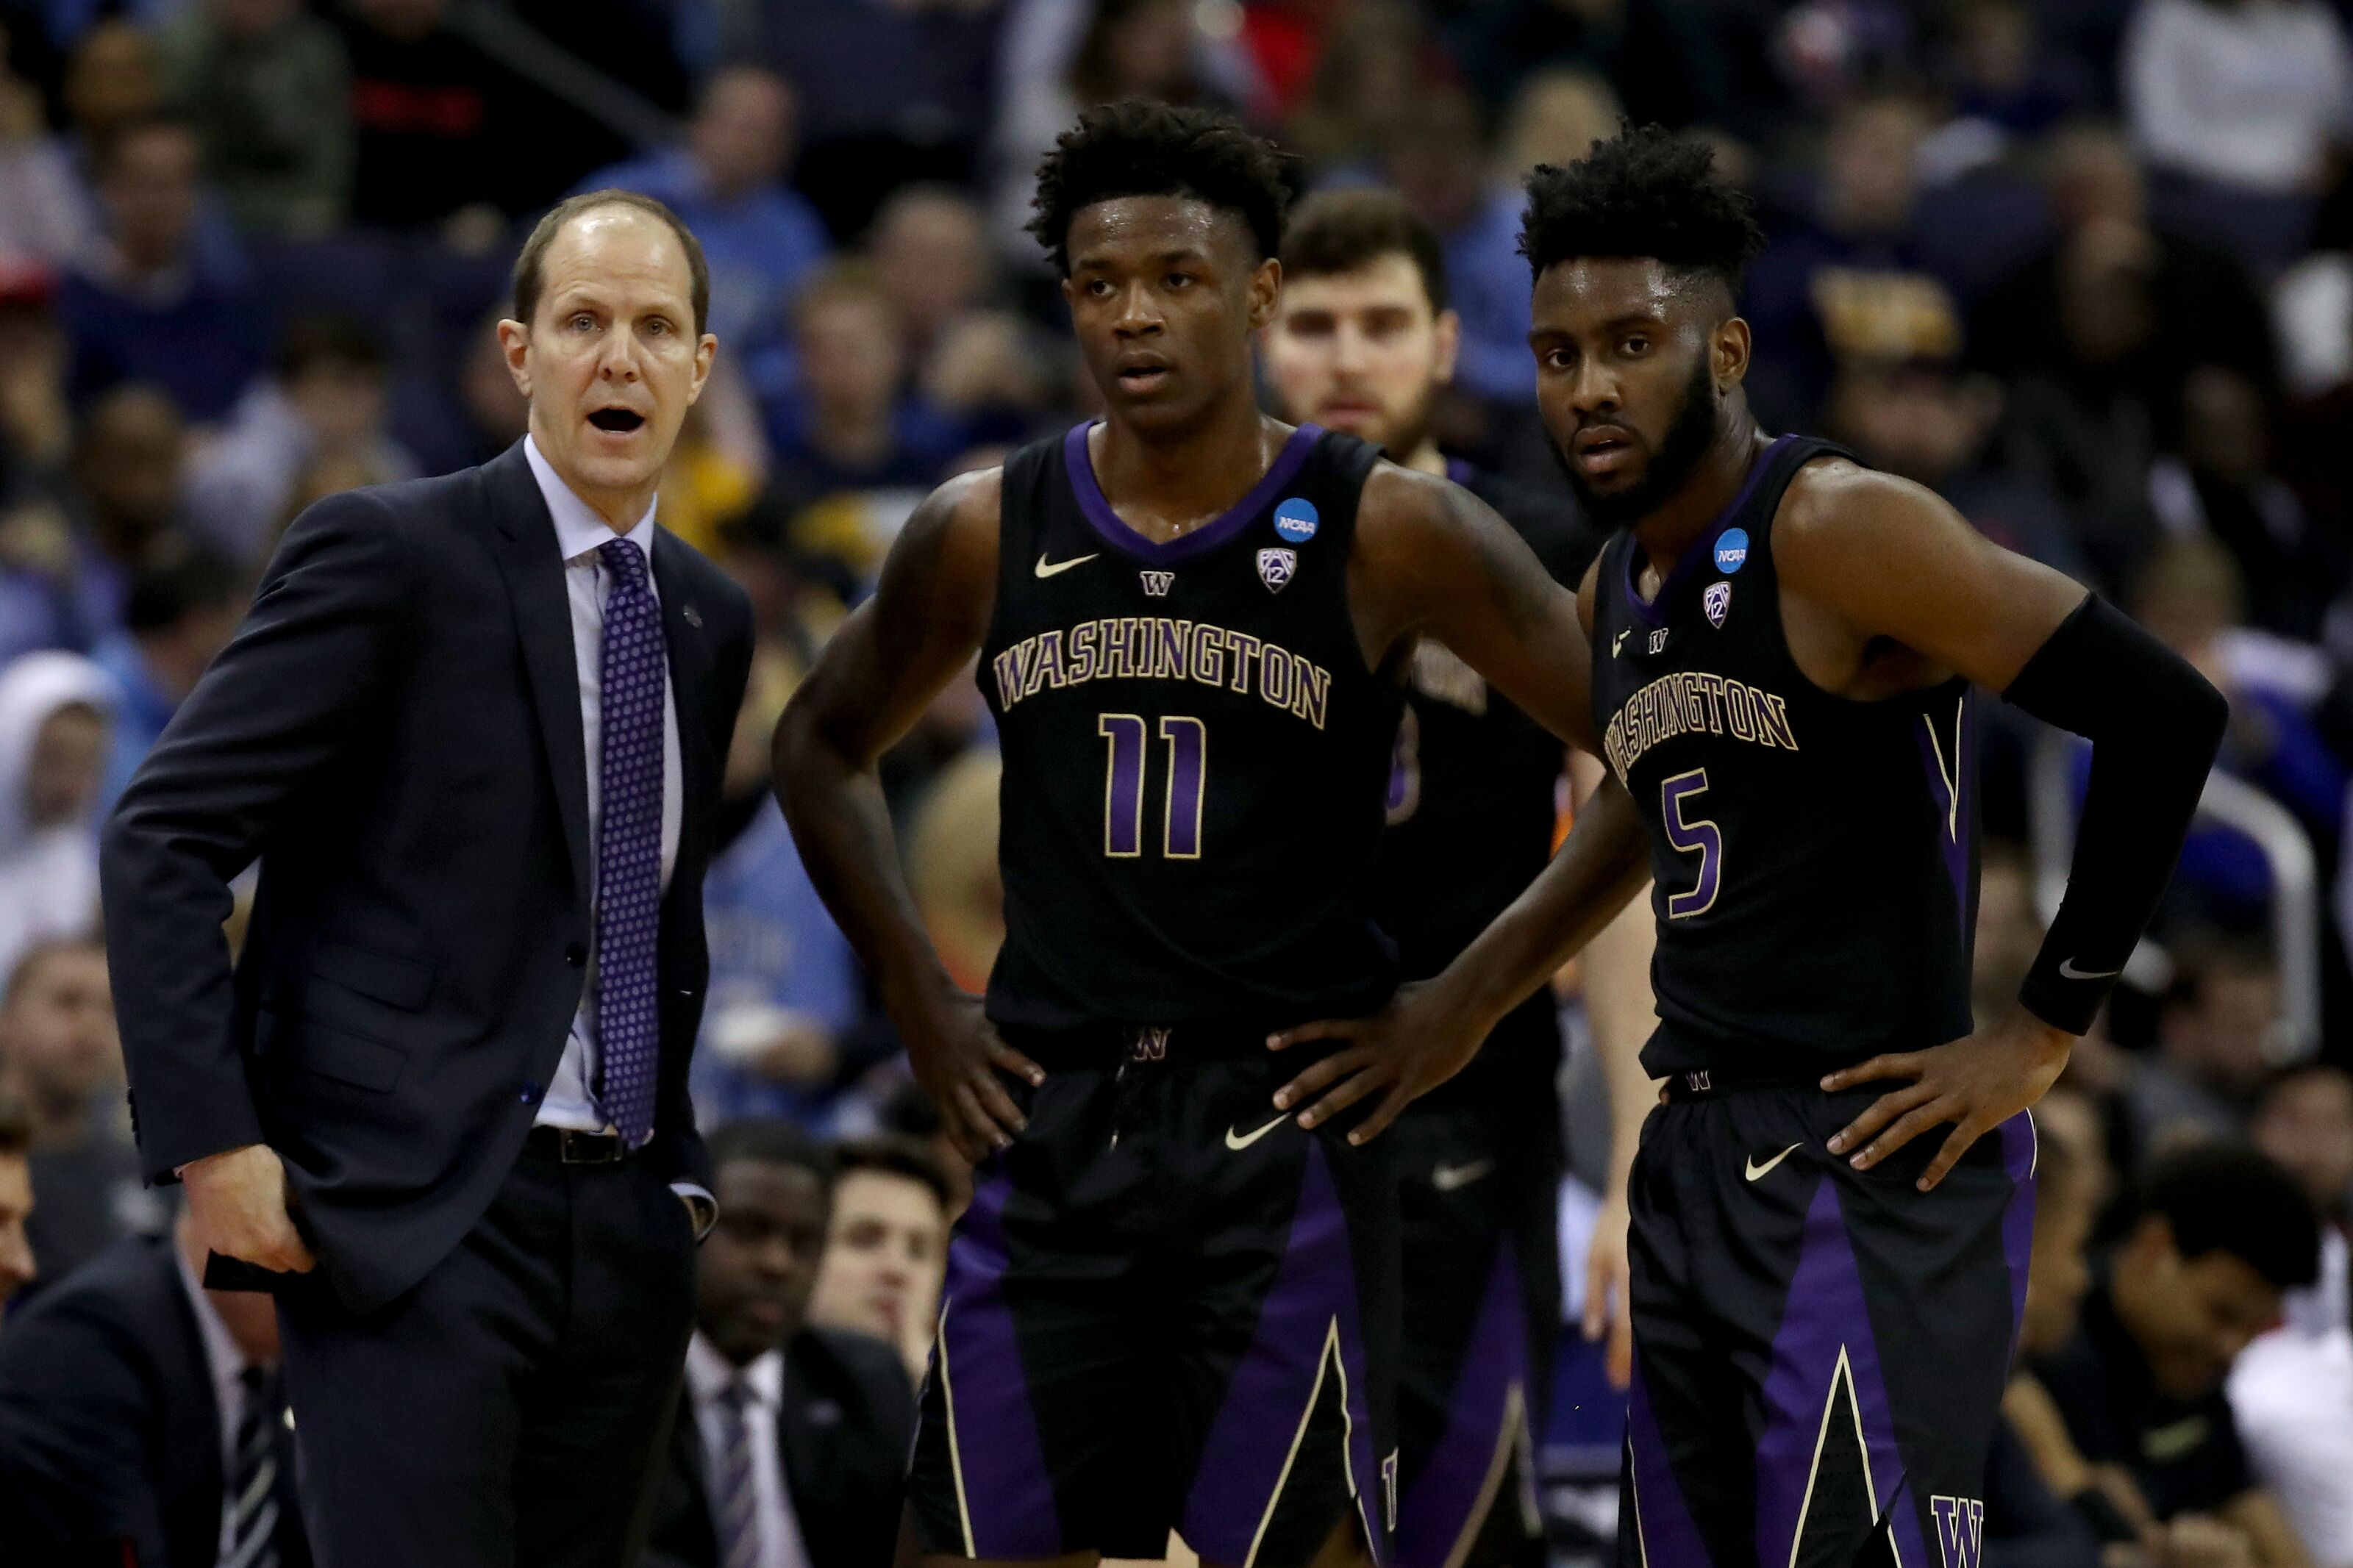 Washington basketball starts the 2019-20 season unranked